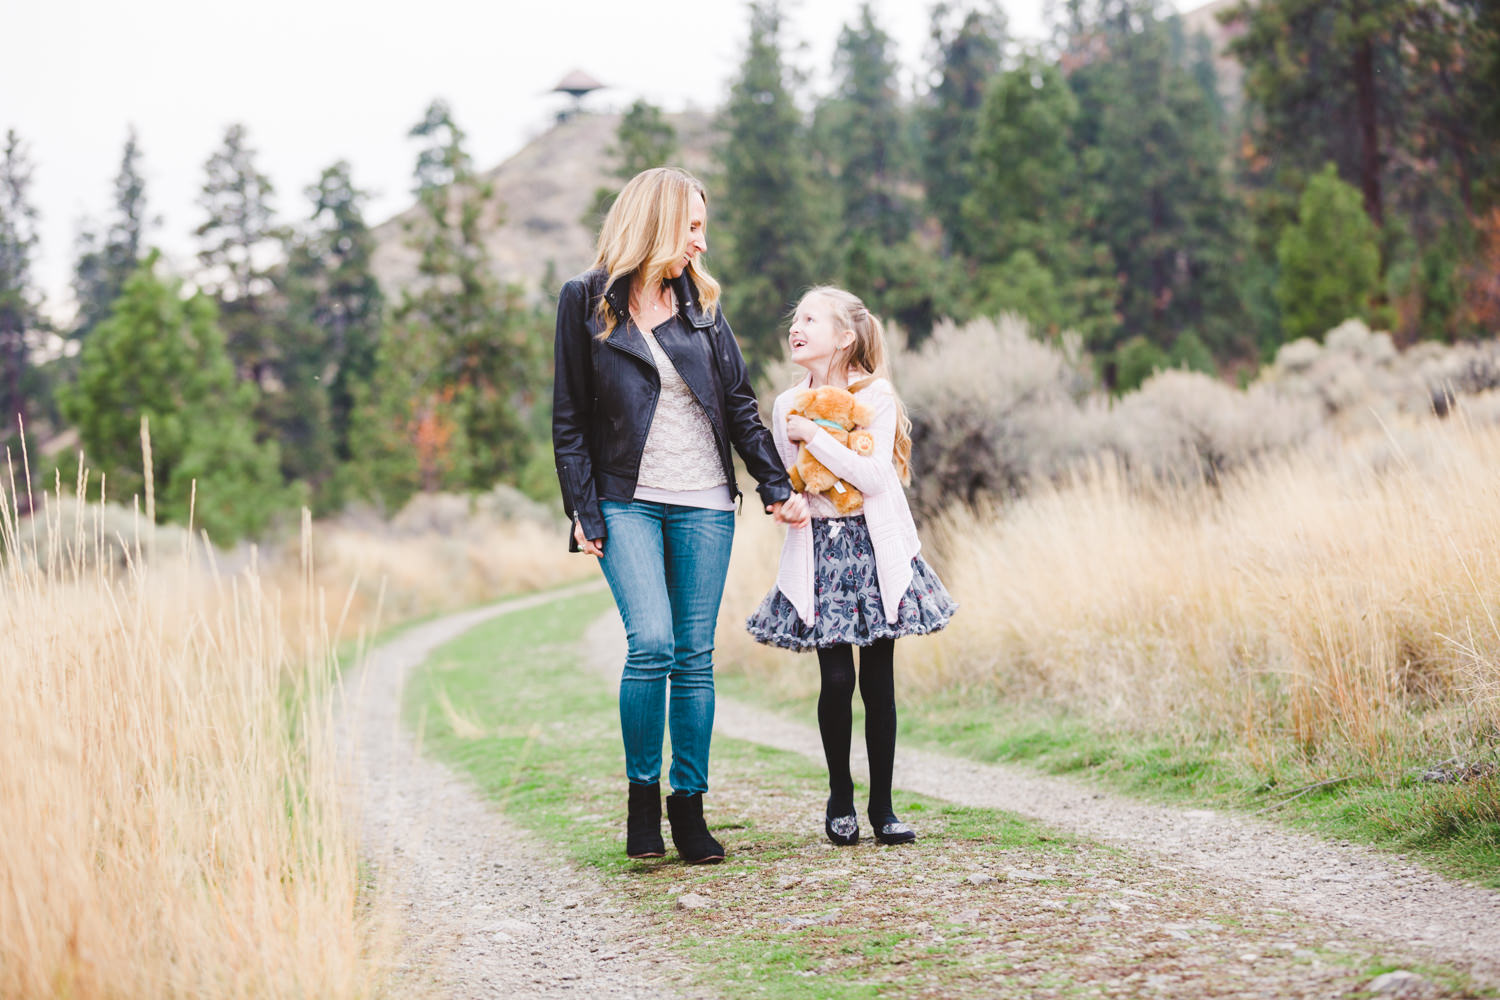 knox-mountain-family-photos-knox-mountain-photographer-knoz mountain-kelowna-bc-knox-moutain-mother-daughter-photography-by-julie-dorge (6 of 27).jpg